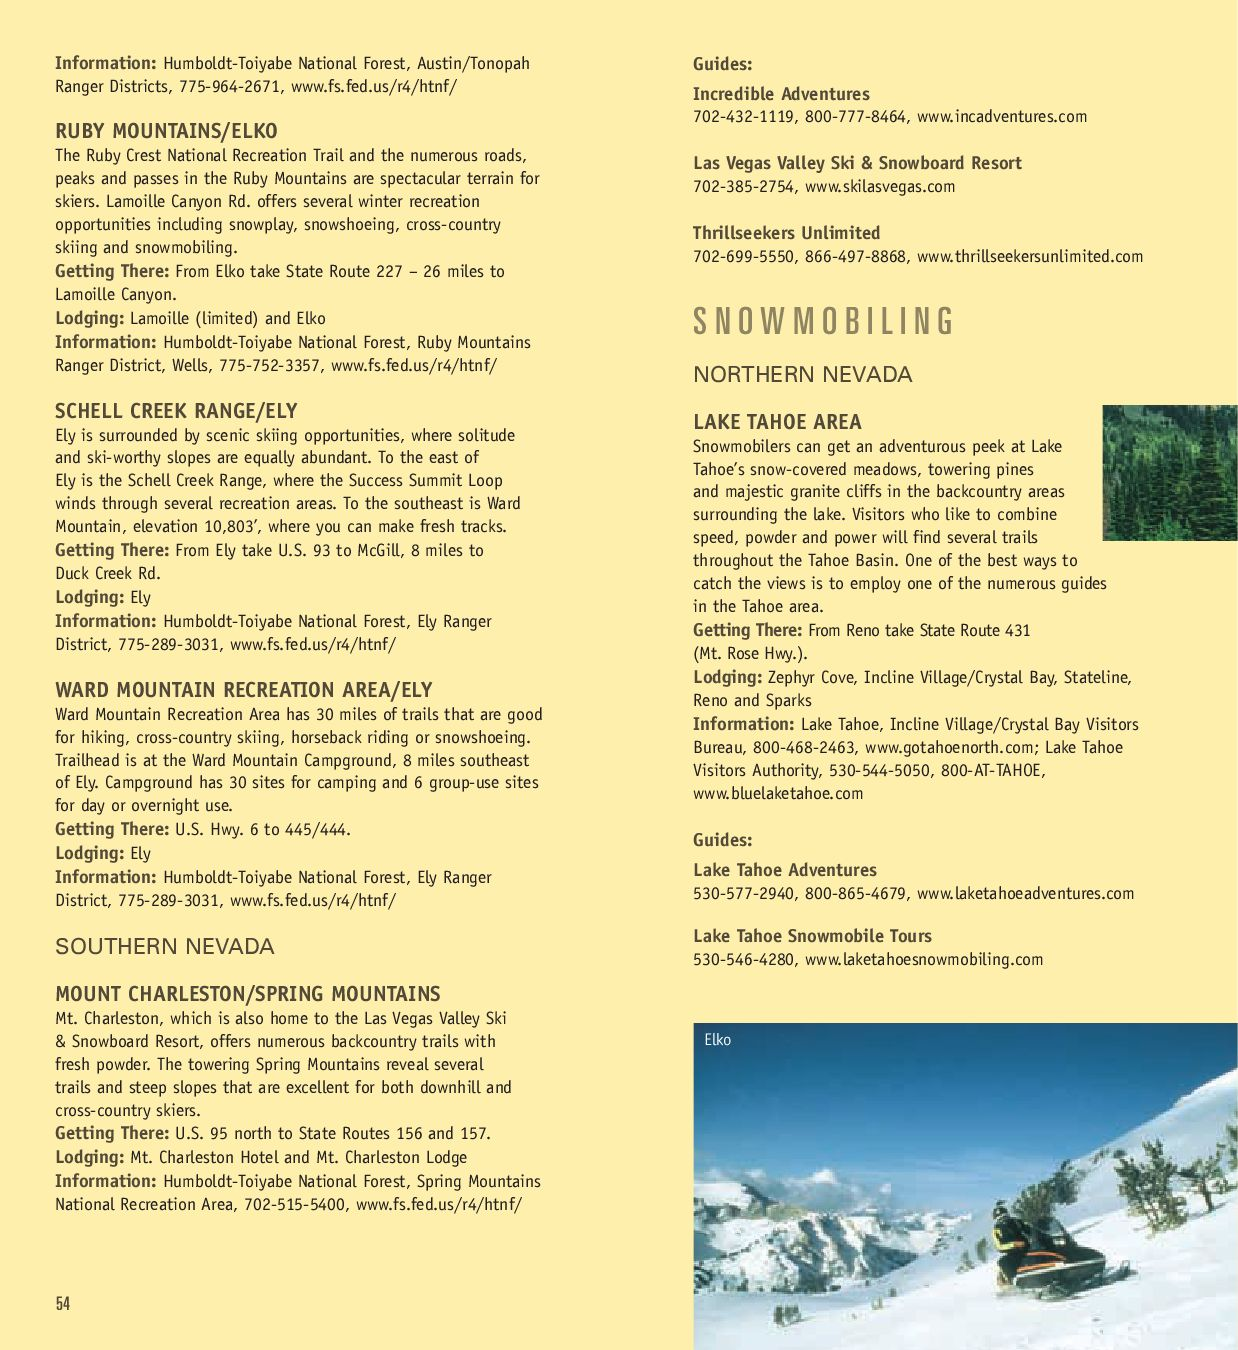 Nevada Adventure Guide by Nevada Commission on Tourism - issuu